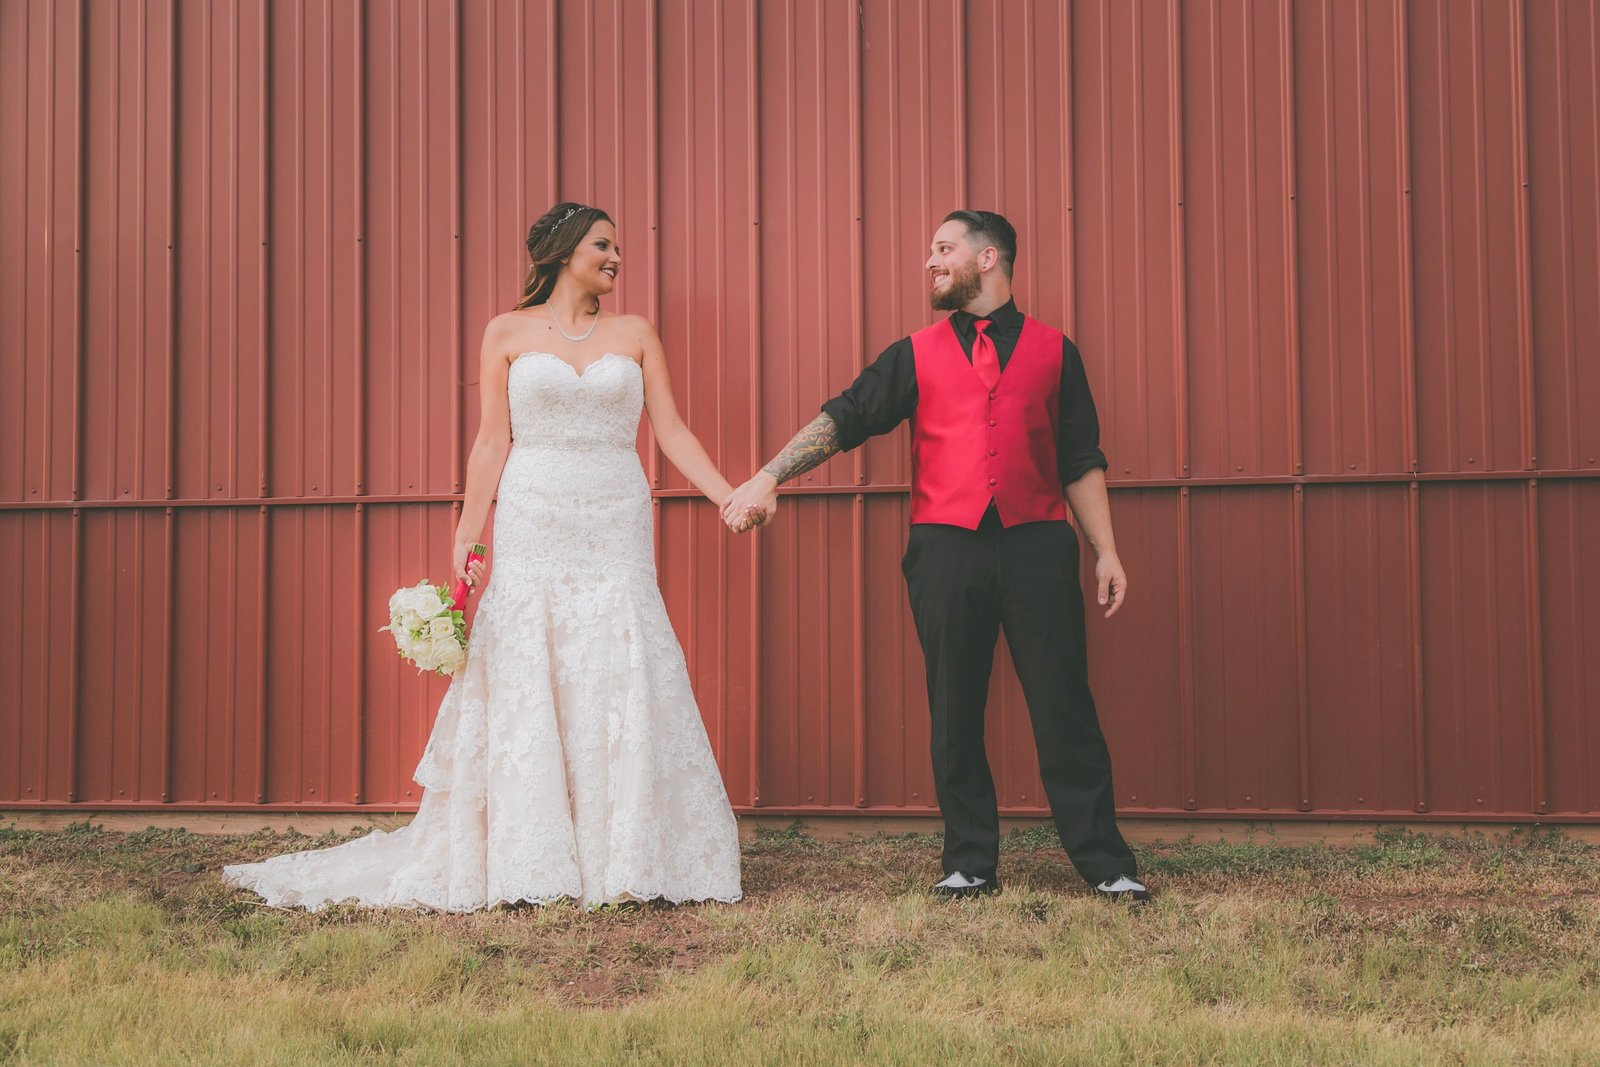 Bride and groom hold hands and look at one another against red barn background.